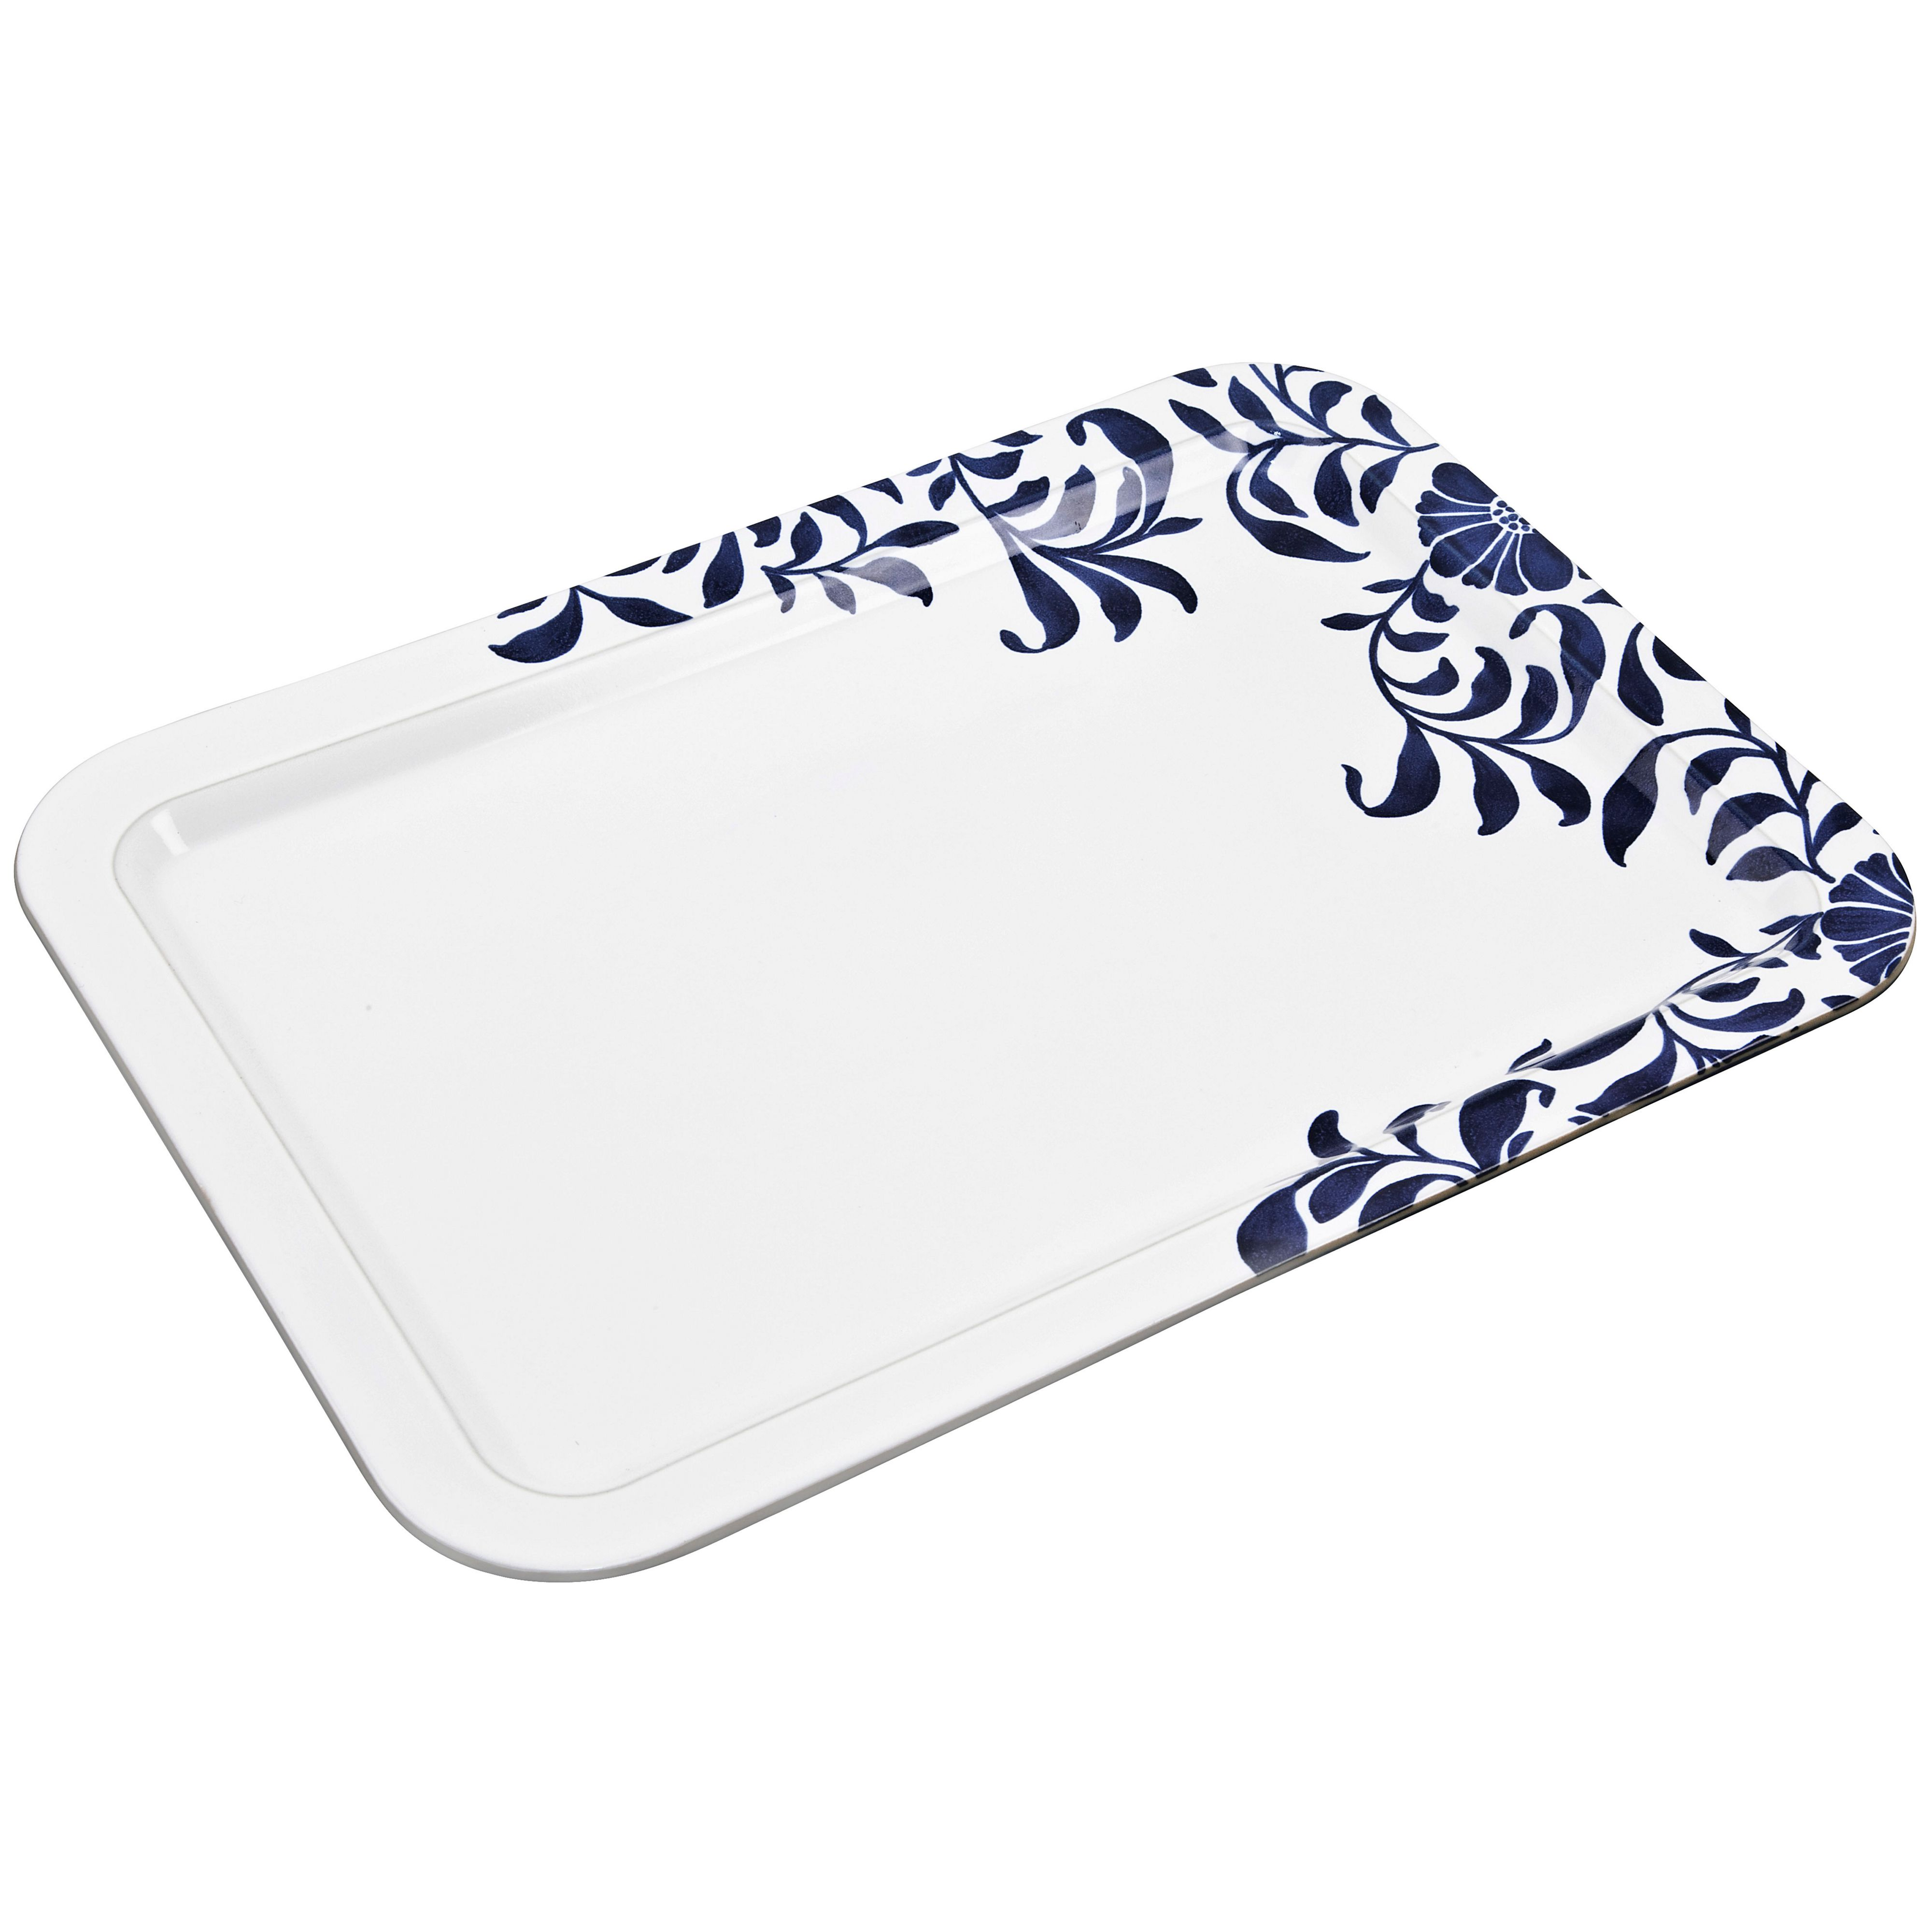 Malmo Bloom large rectangular platter 37 x 26cm